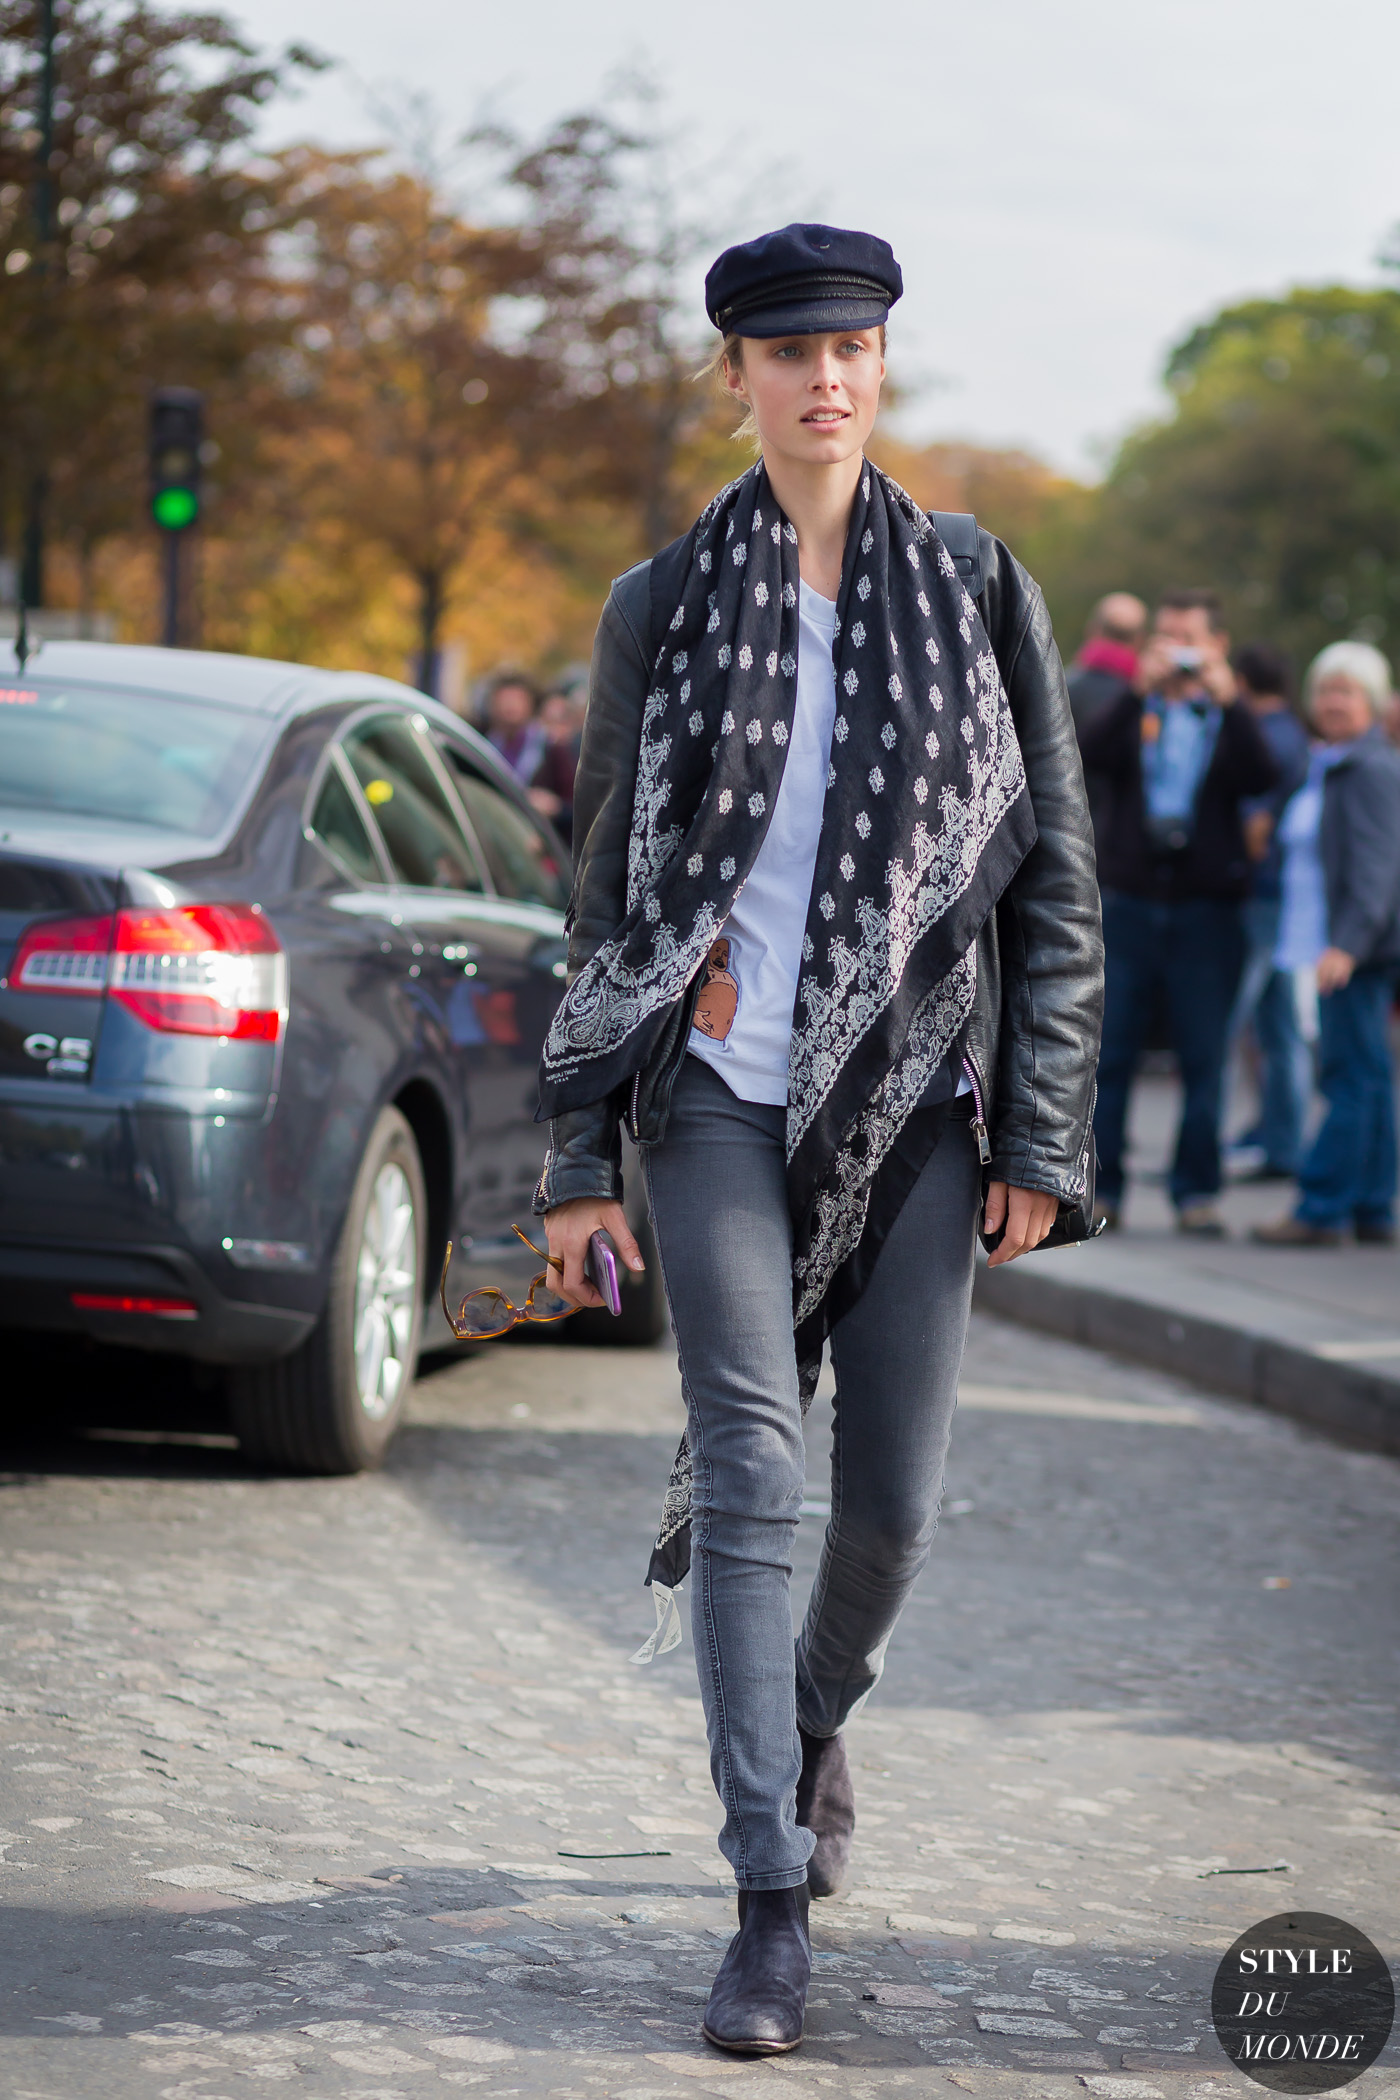 Edie Campbell Street Style Street Fashion Streetsnaps by STYLEDUMONDE Street Style Fashion Photography